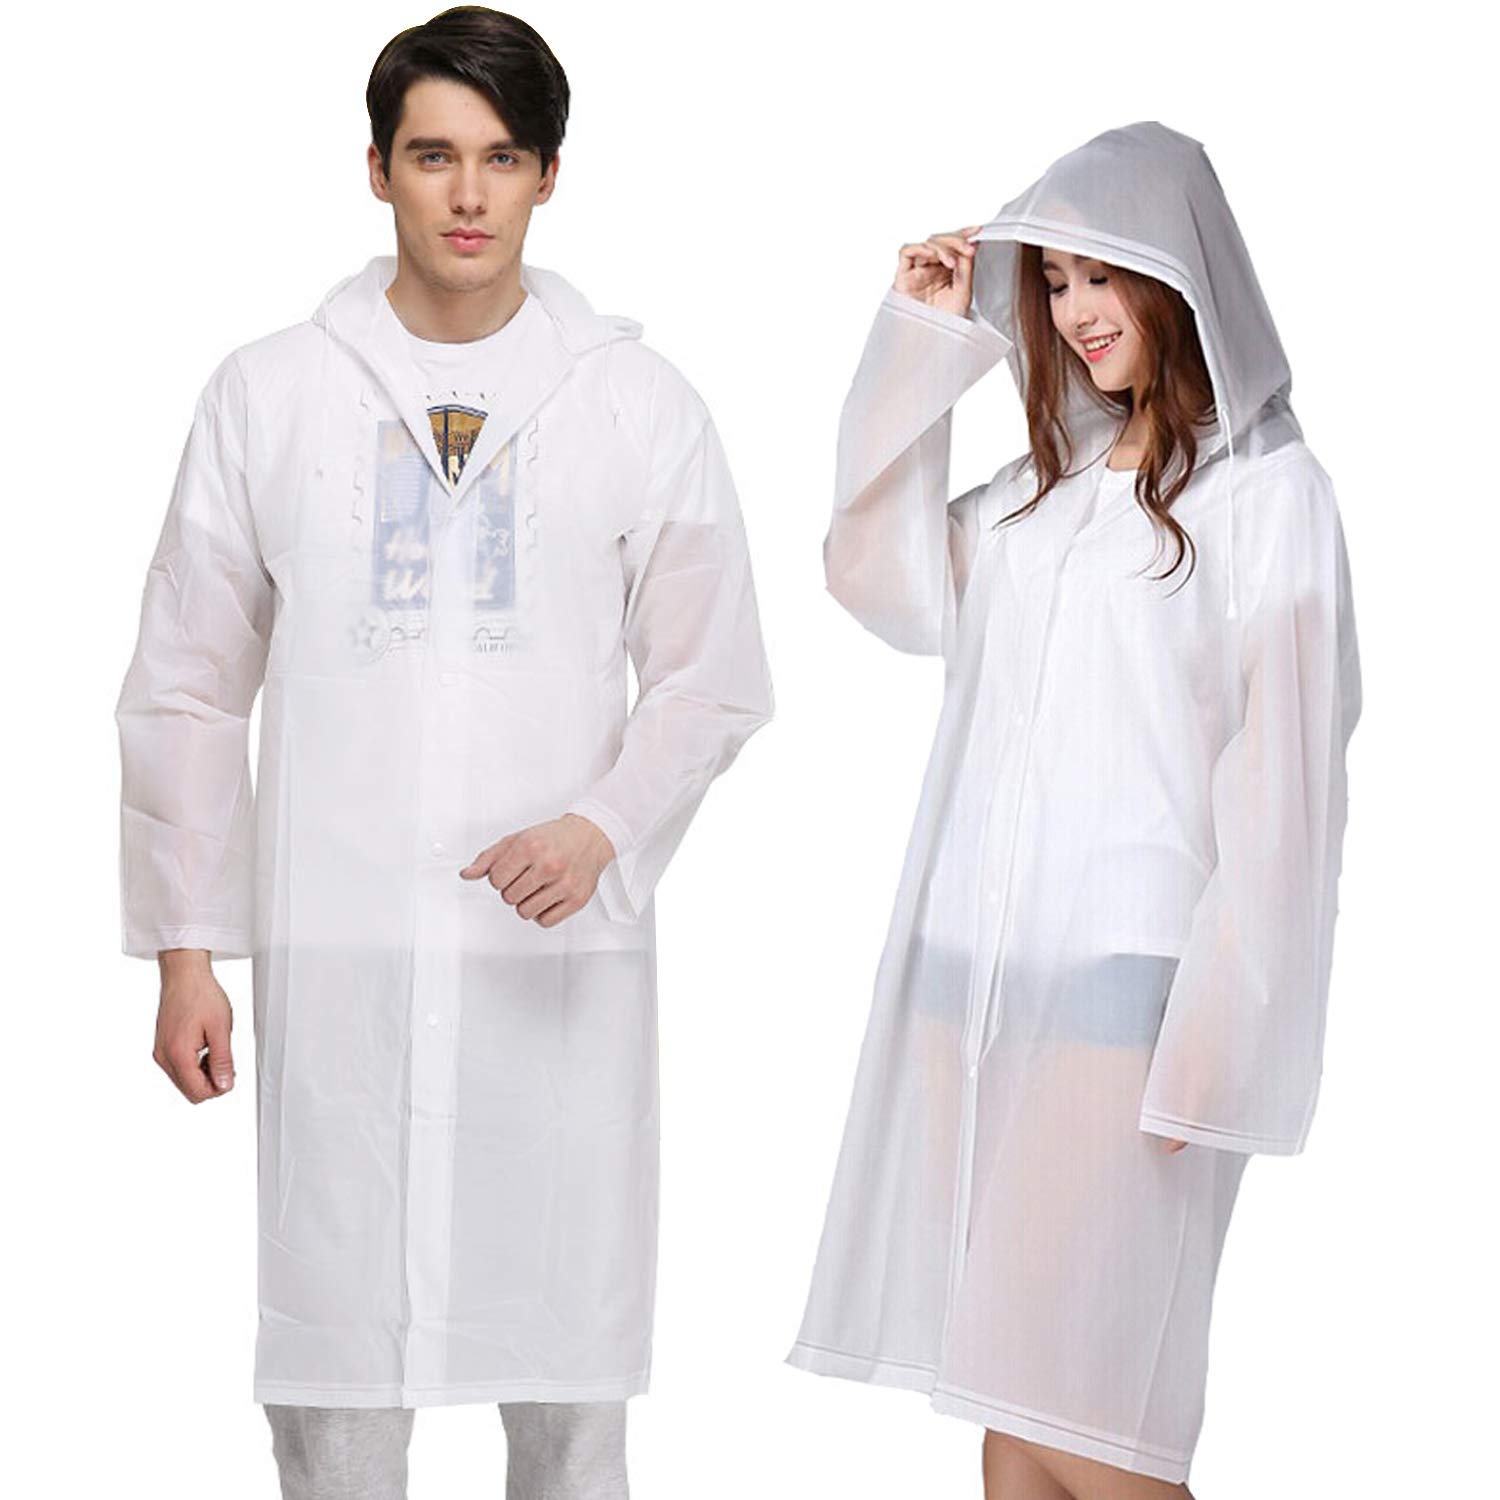 KKTICK Rain Poncho for Adults, Reusable Raincoat with Hoods, Sleeves and Buttons, Thicken Waterproof Men Women Clear Ponchos for Outdoors, Theme Parks, Hiking, Camping, School Sporting - 2 Pack by KKTICK